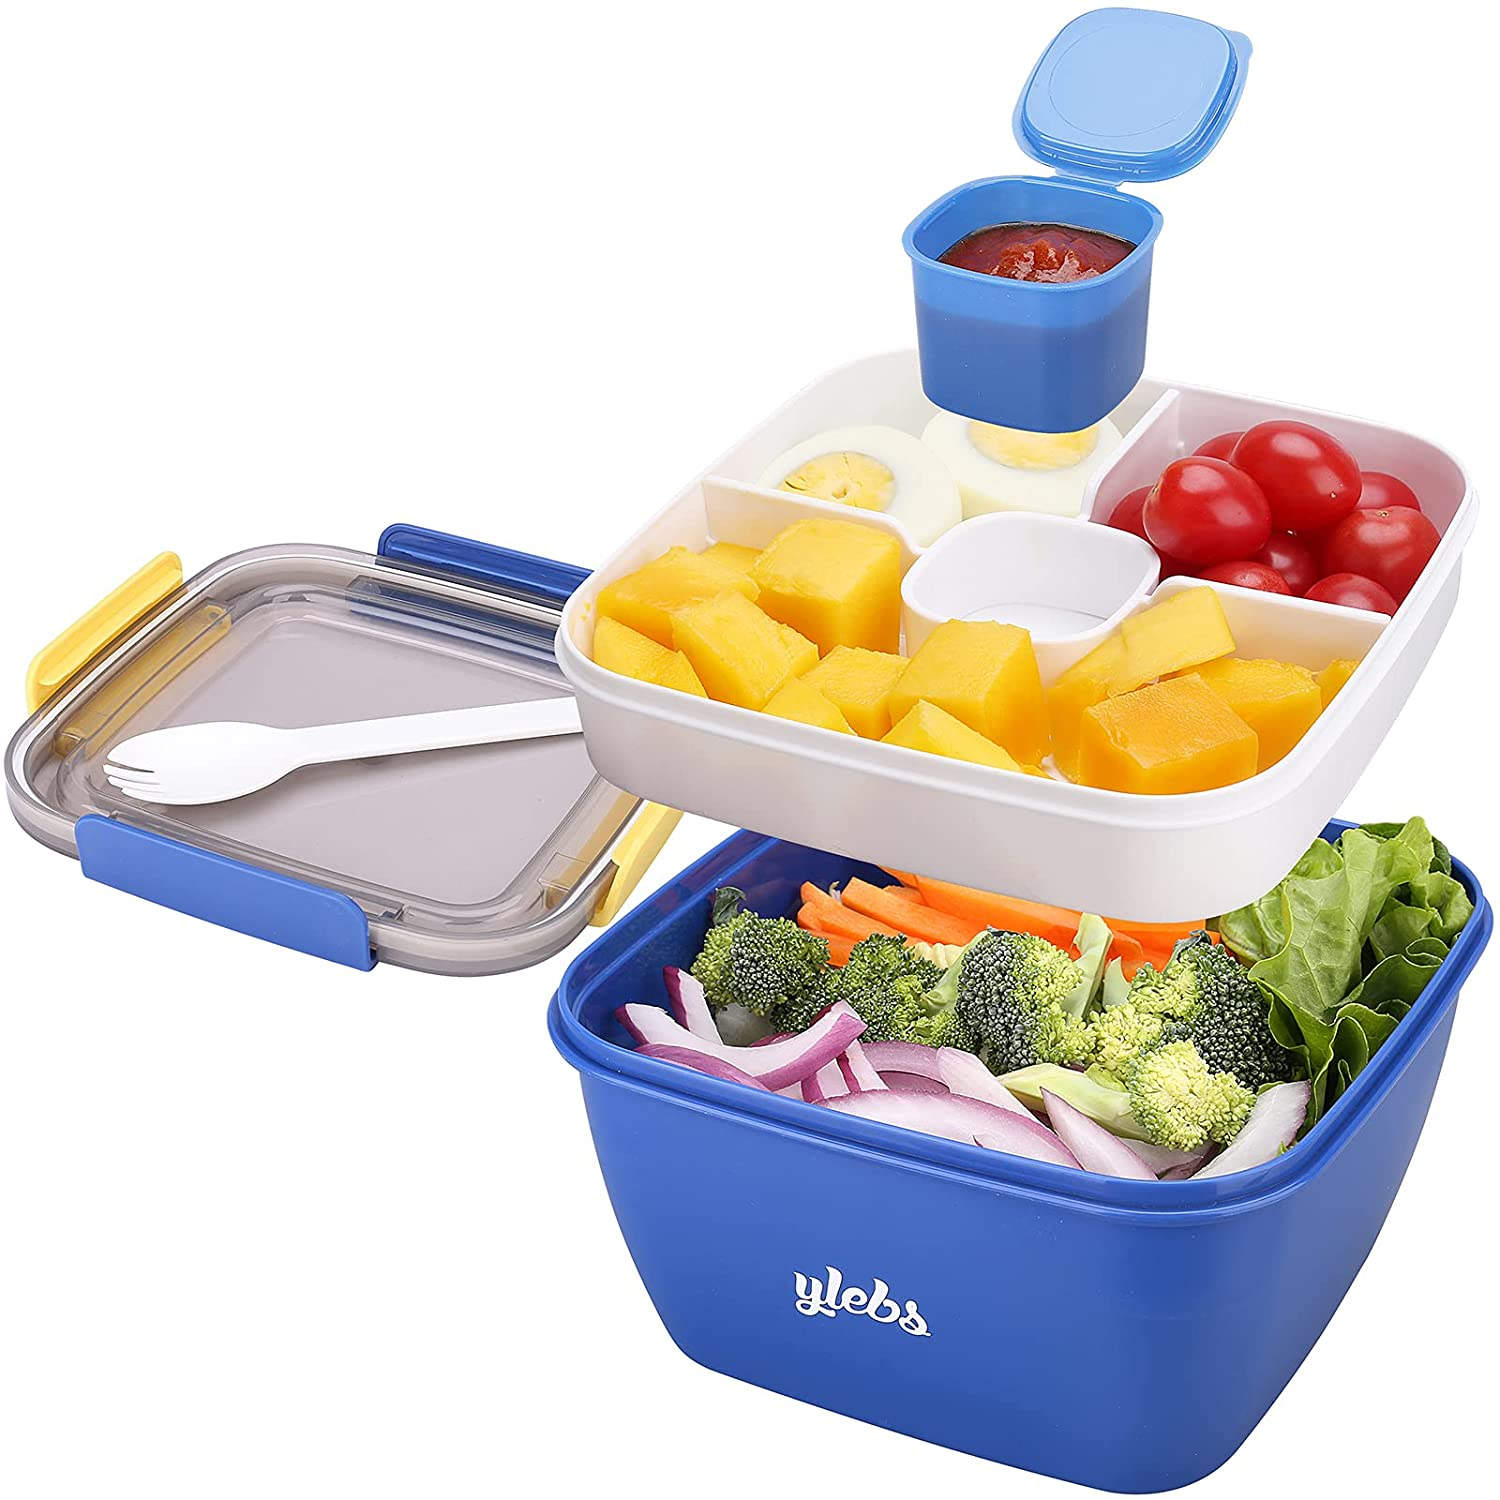 Bento Box Salad Lunch Containers with Compartments,Salad Bowl with Bento-Style Tray and Dressing Sauce Container,Leak-Proof Lunch Box for Kids & Adults,BPA-Free and Food-Safe Materials(Blue)